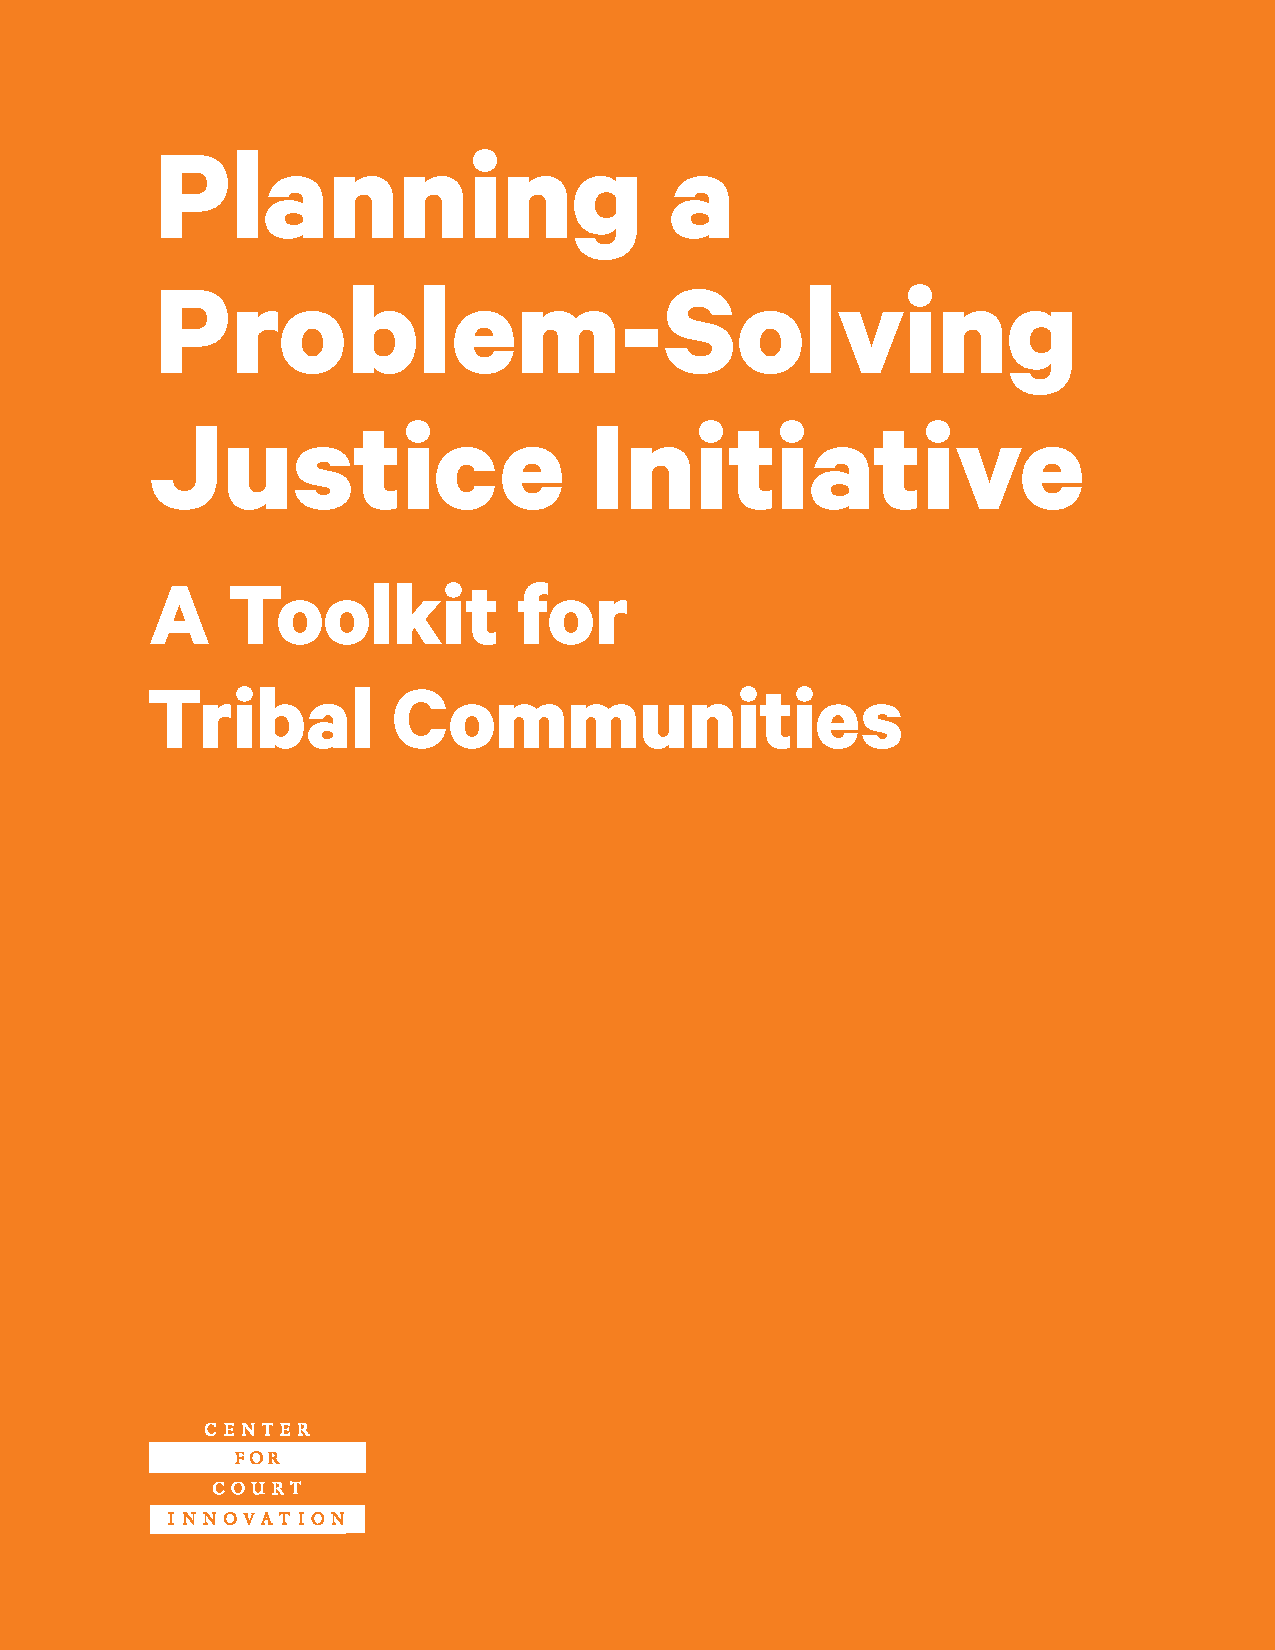 Planning a Problem-Solving Justice Initiative - A Toolkit for Tribal Communities